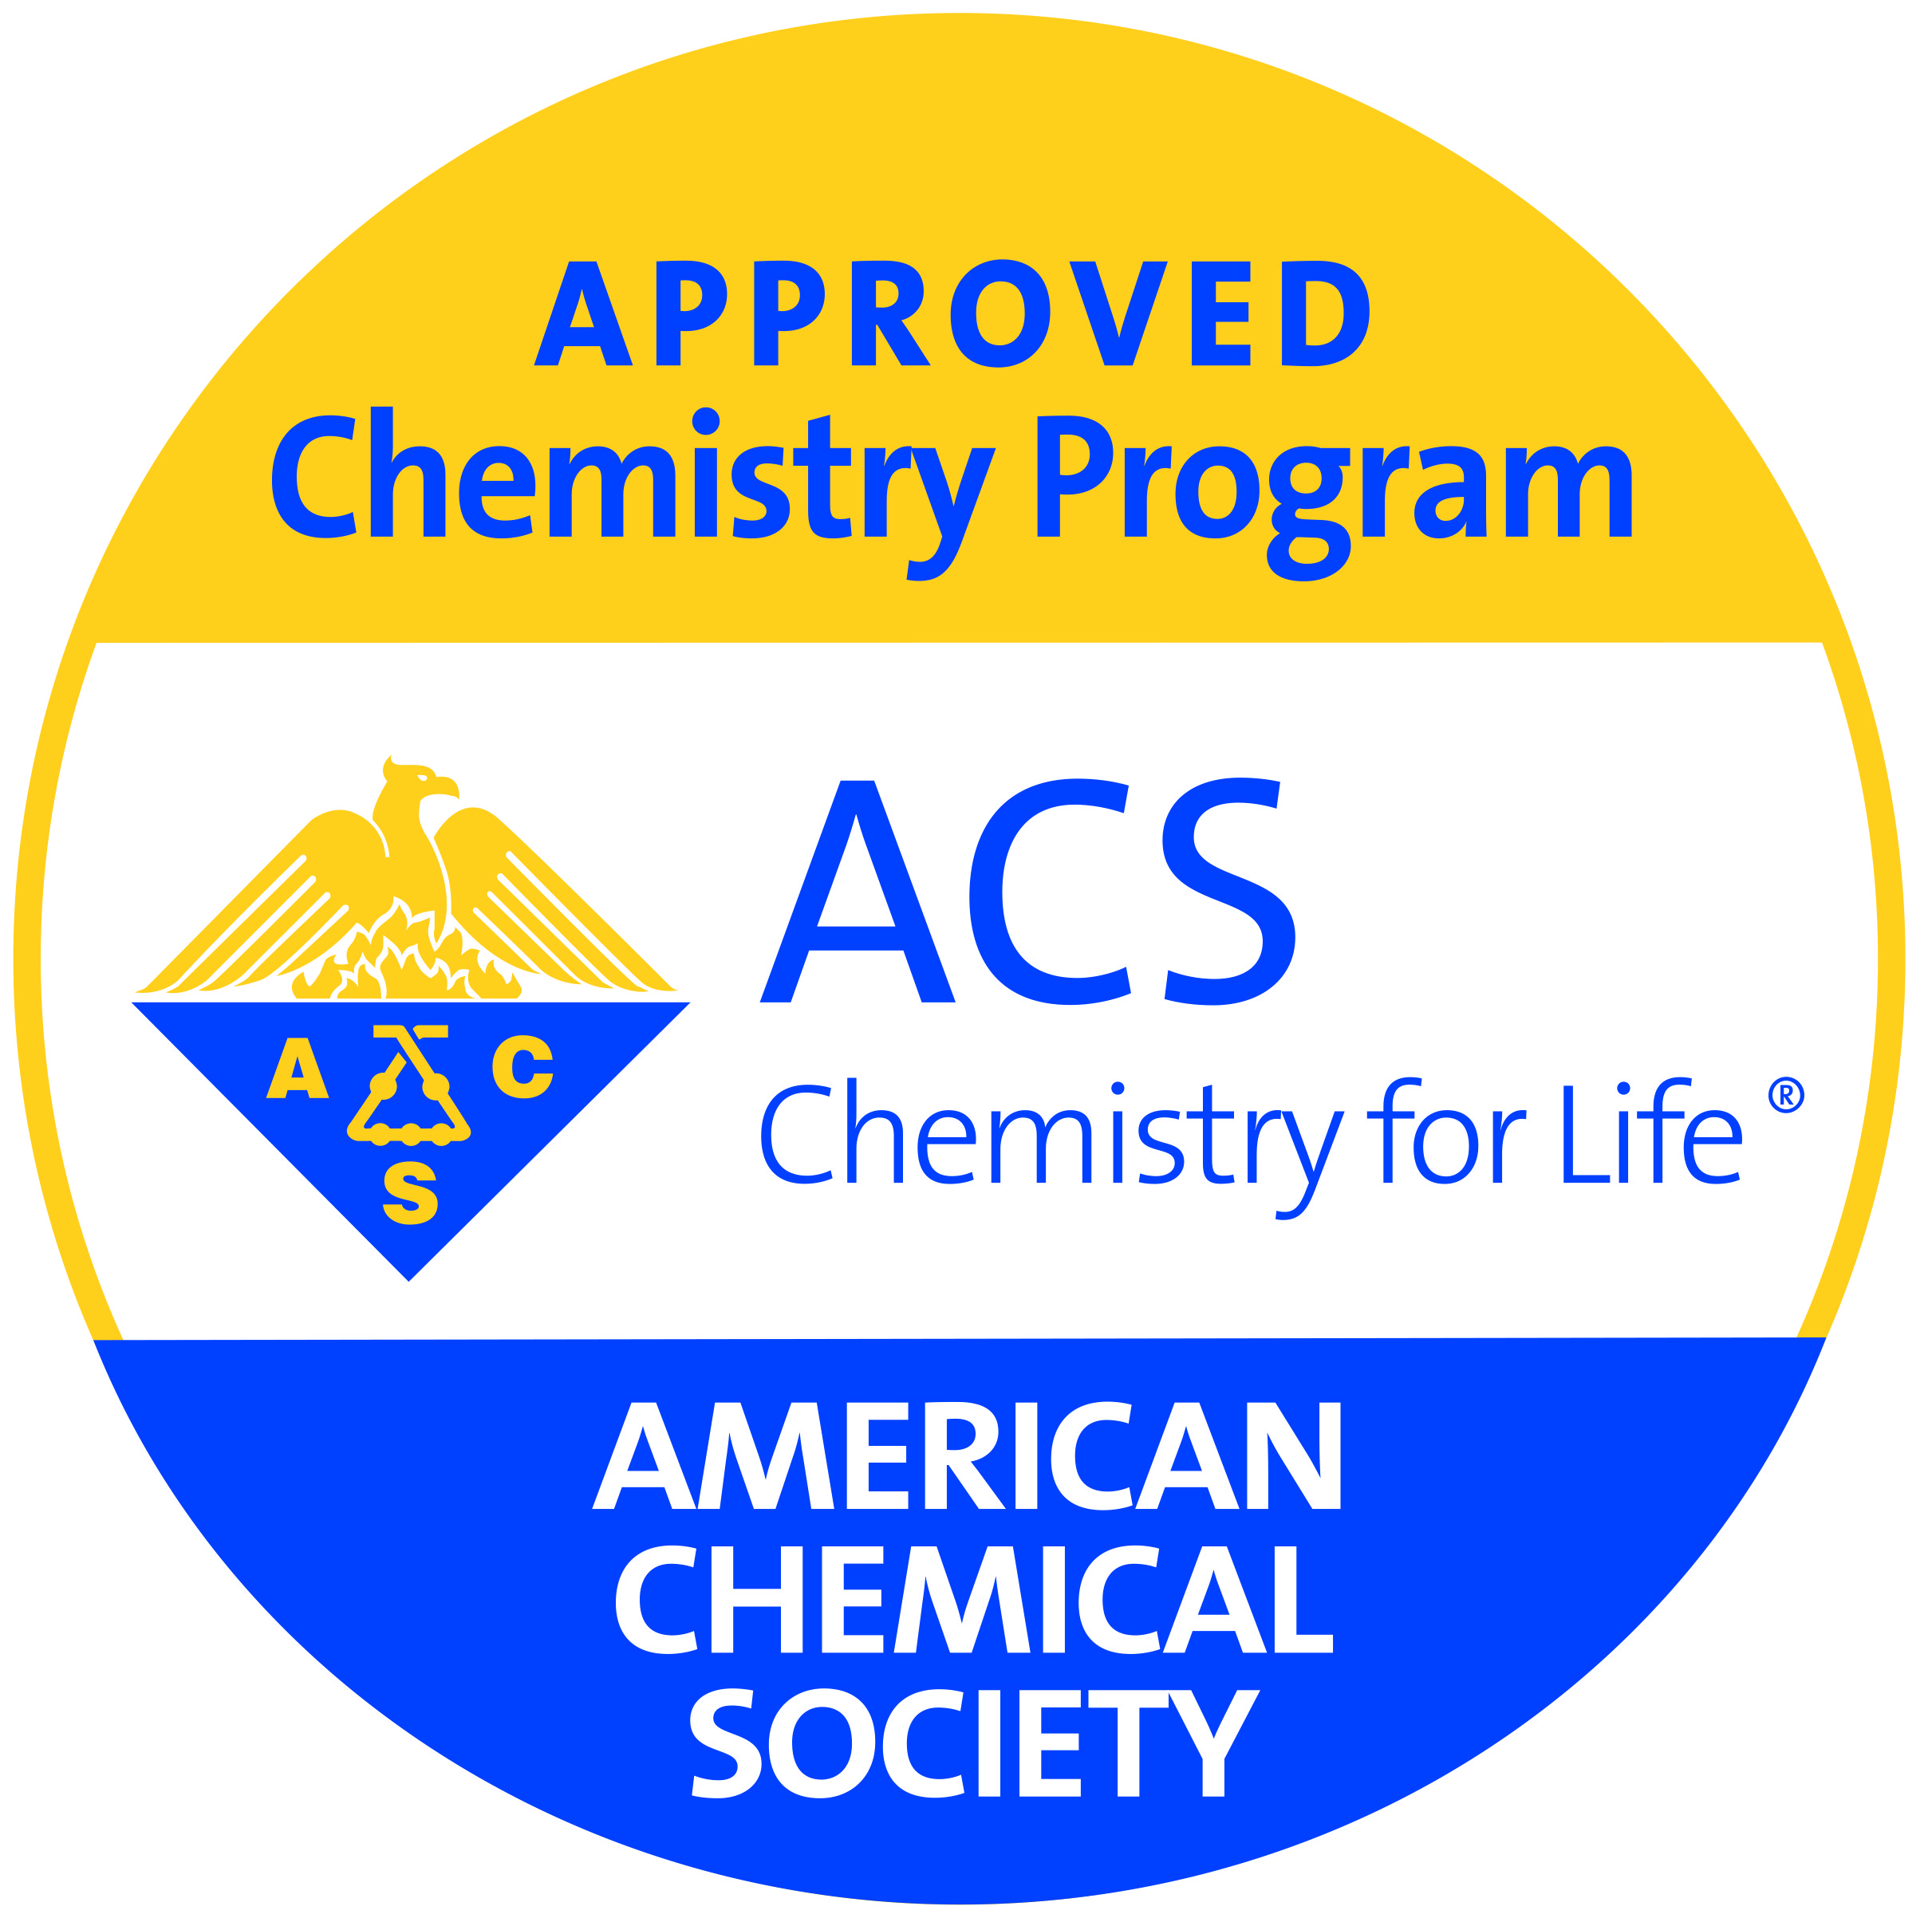 acs approved logo